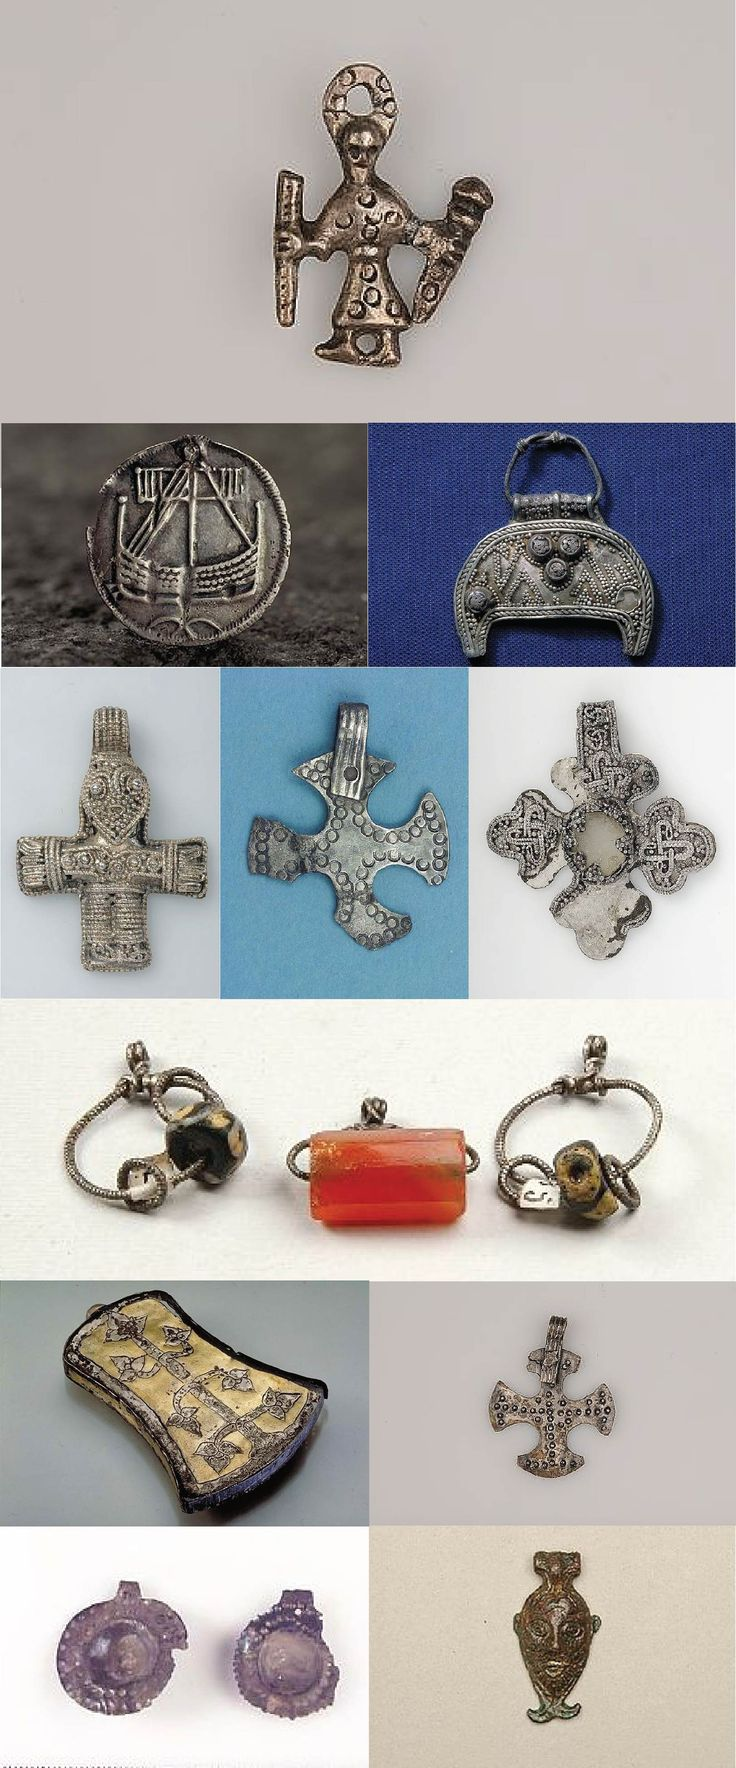 A collection of necklaces and pendants from Birka.